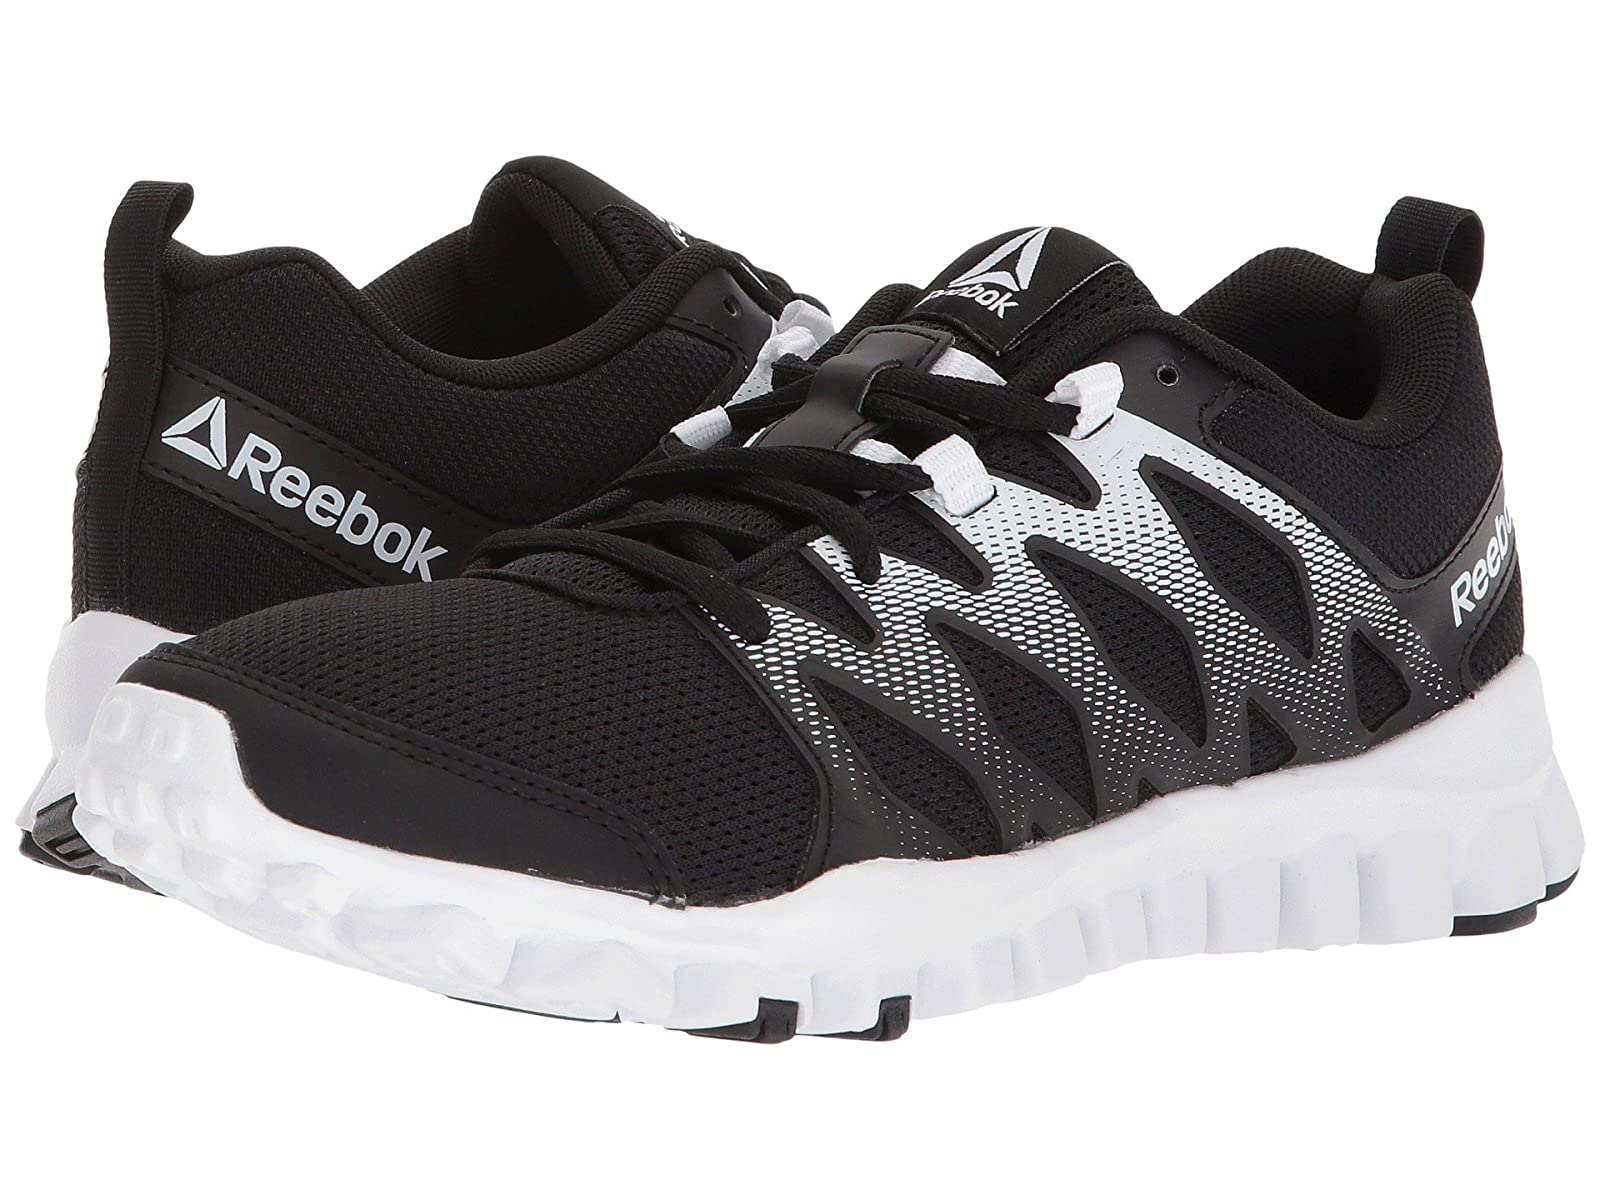 Reebok RealFlex Train 4.0Cheap and distinctive eye-catching shoes